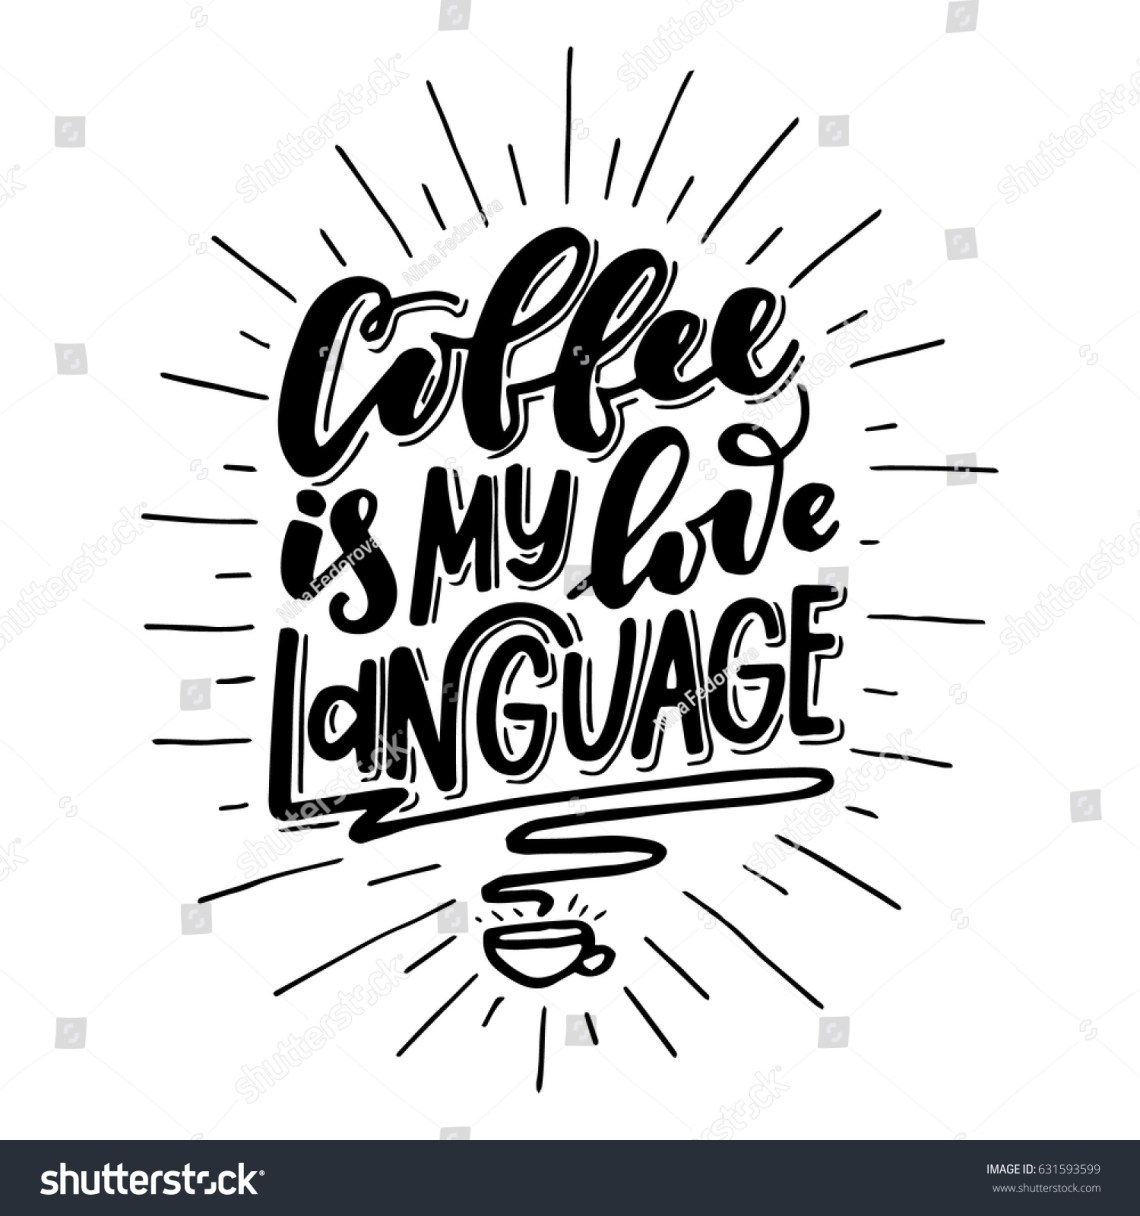 Download Coffee My Love Languageinspirational Quotehand Drawn Stock ...